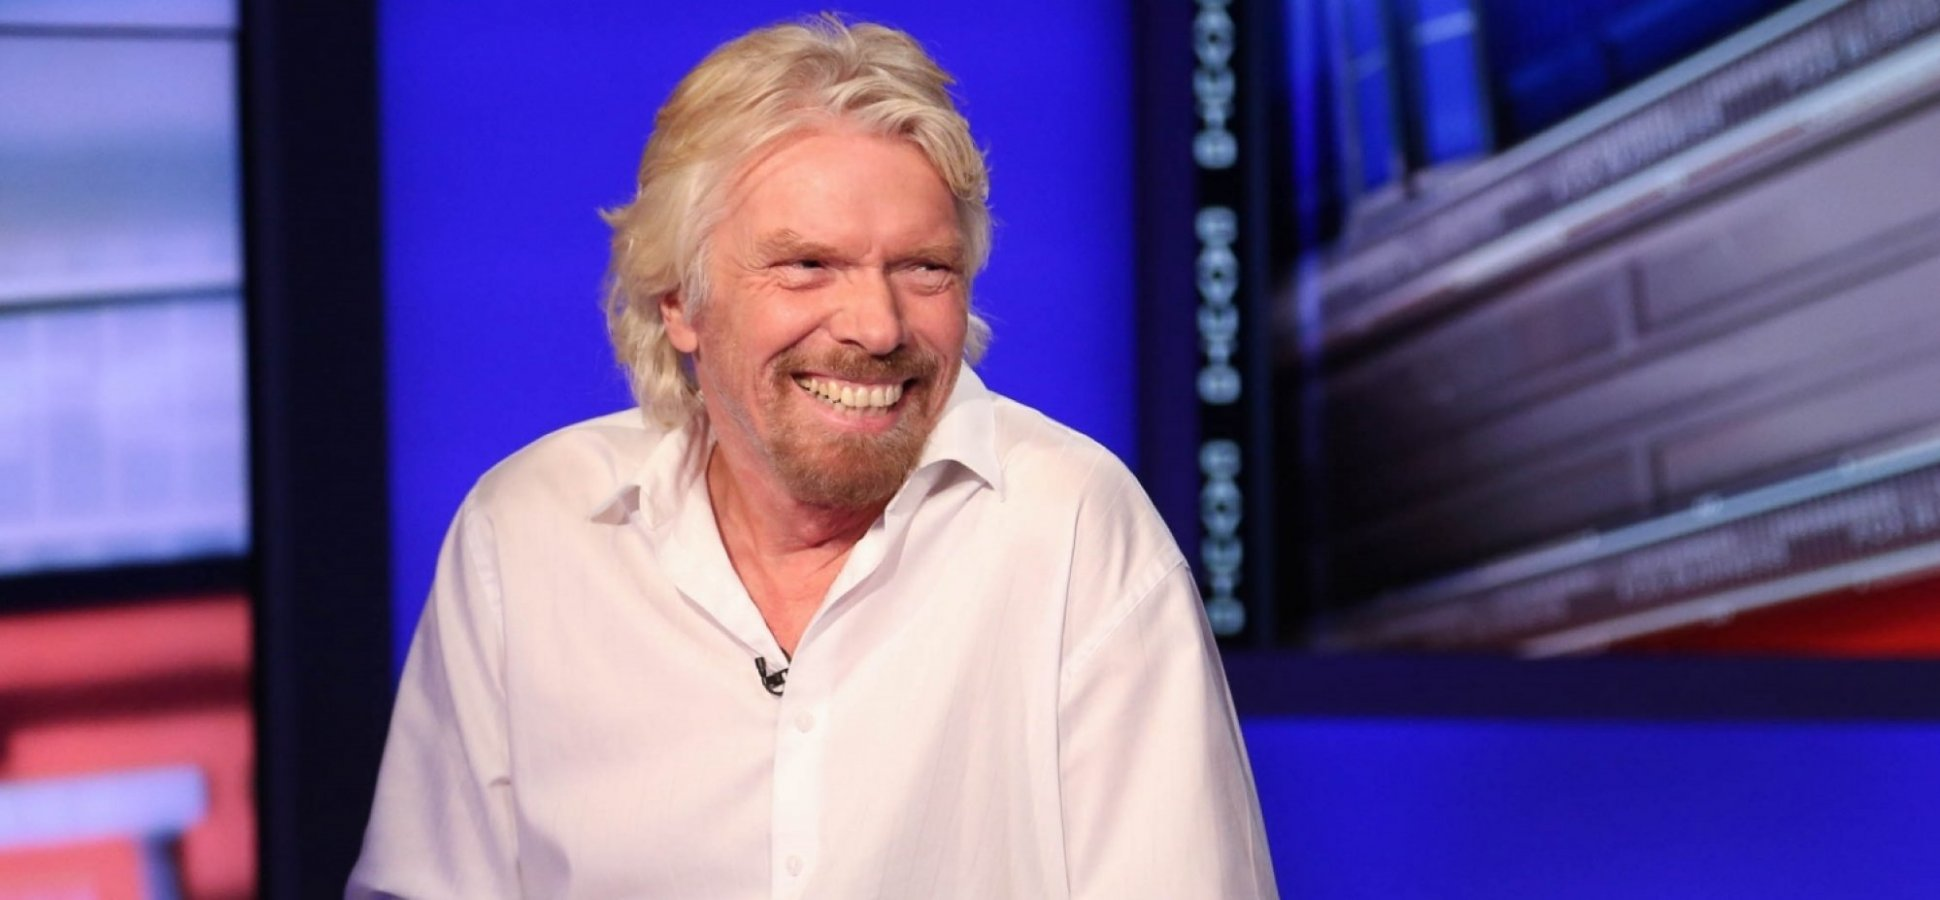 These 40 Inspirational Quotes Picked by Richard Branson Will Move You to Achieve Your Potential